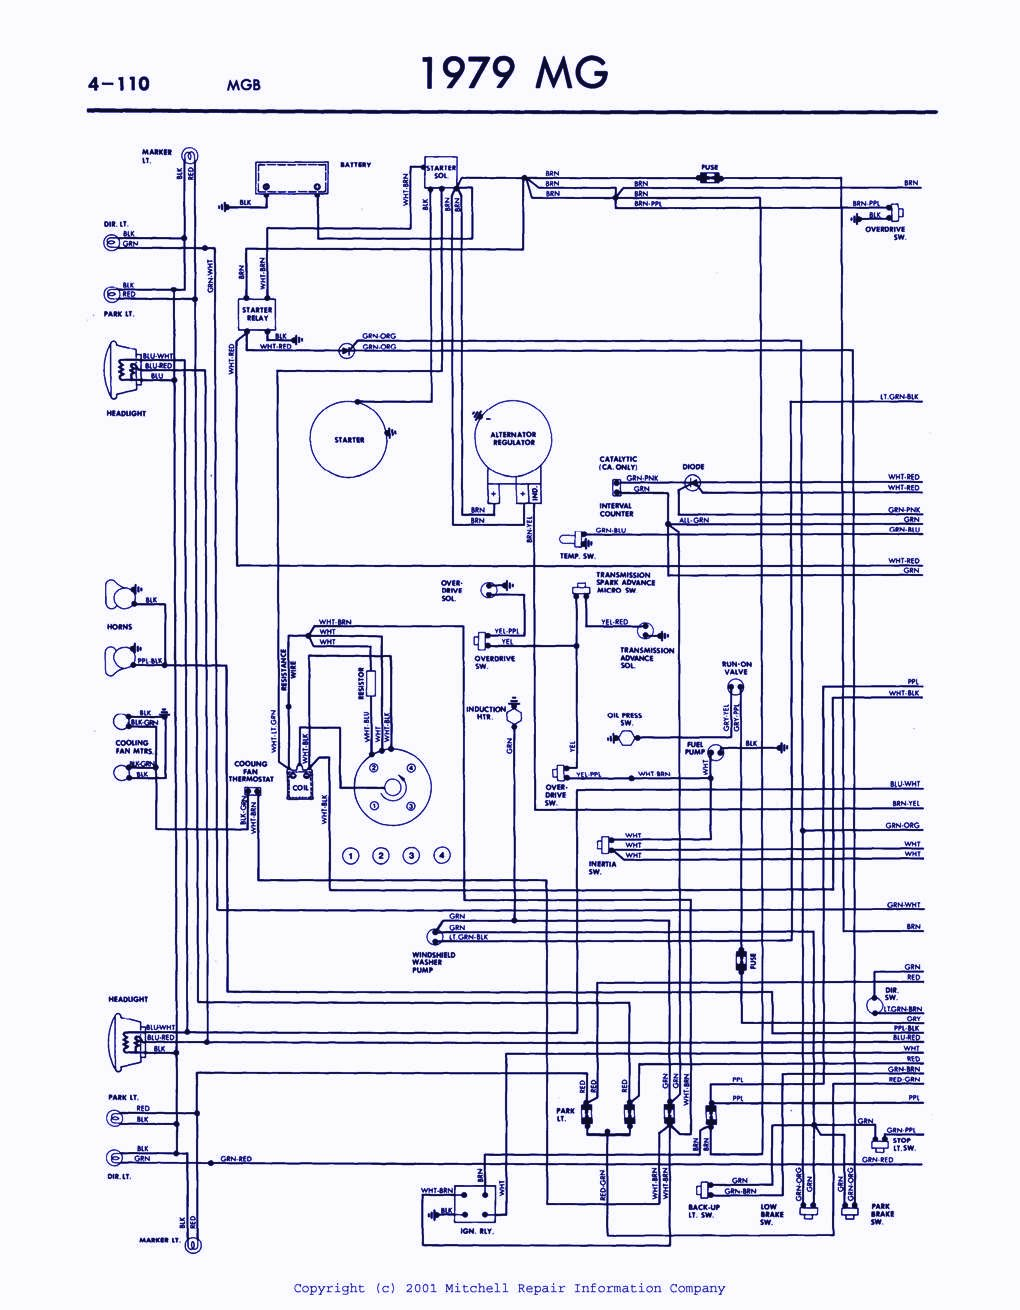 Mg Midget Wiring Schematic Diagram Base Website Wiring Schematic -  HEARTDIAGRAMBLANK.BISTROTPAPILLON.FR